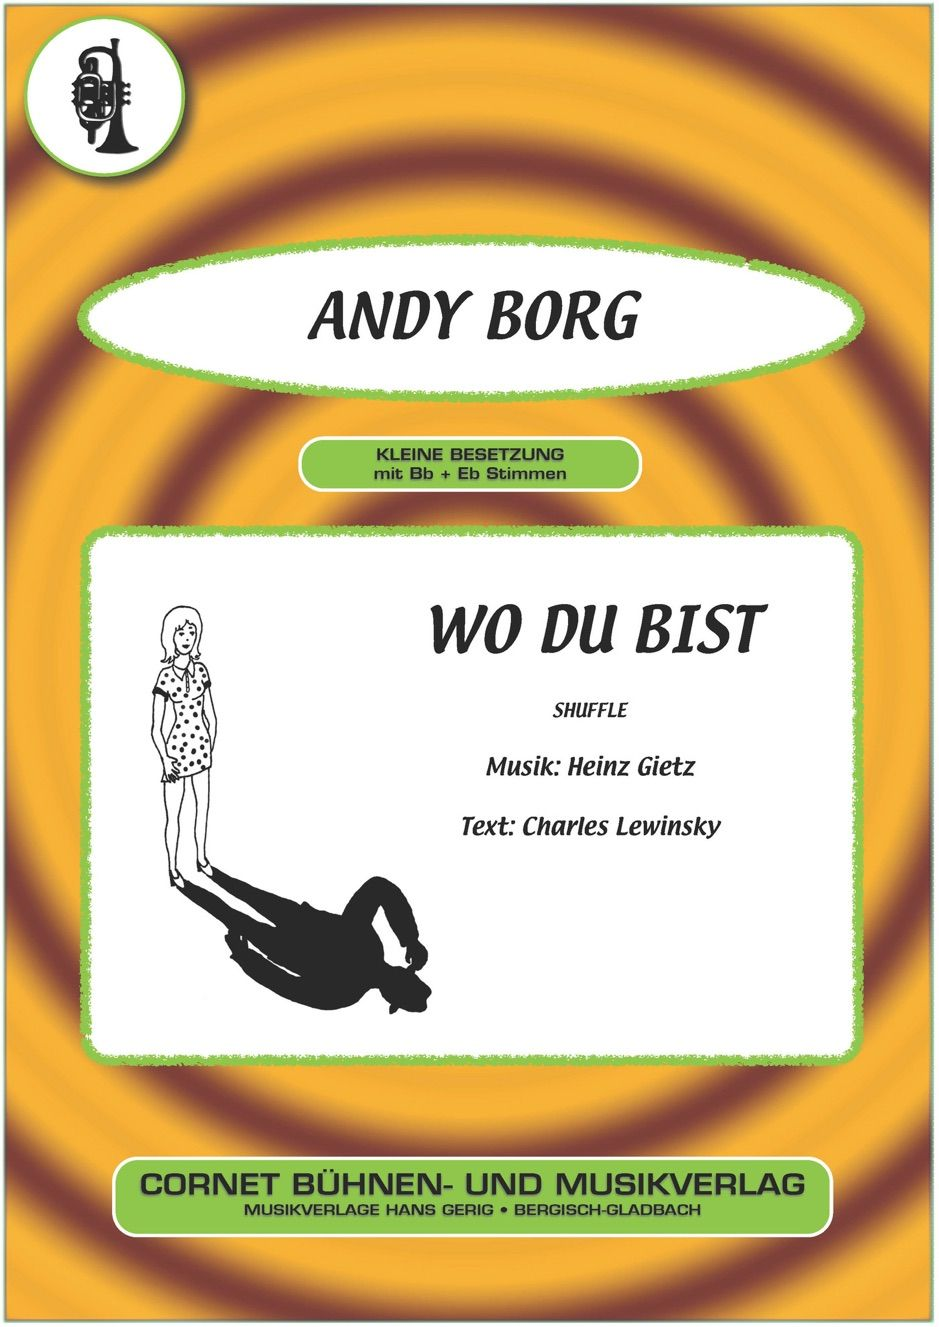 ‎Wo du bist , AFFILIATE, bist, books, du, download